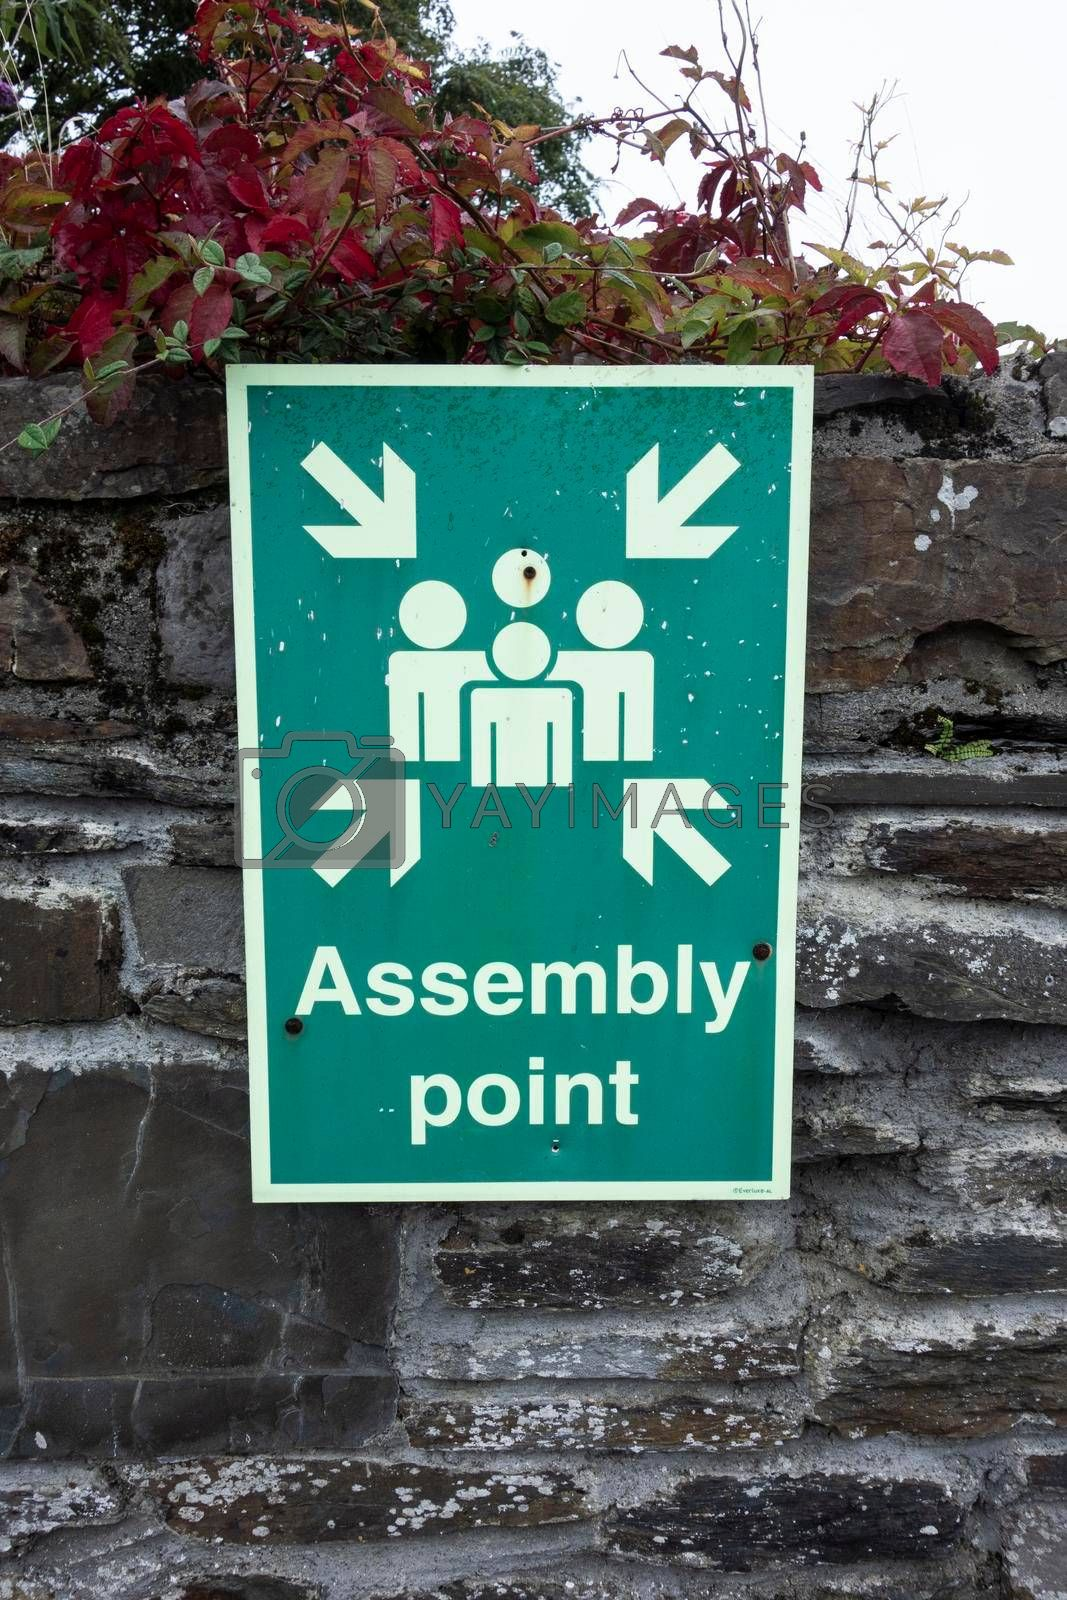 fire safety assembly point sign, pictogram of people on green background